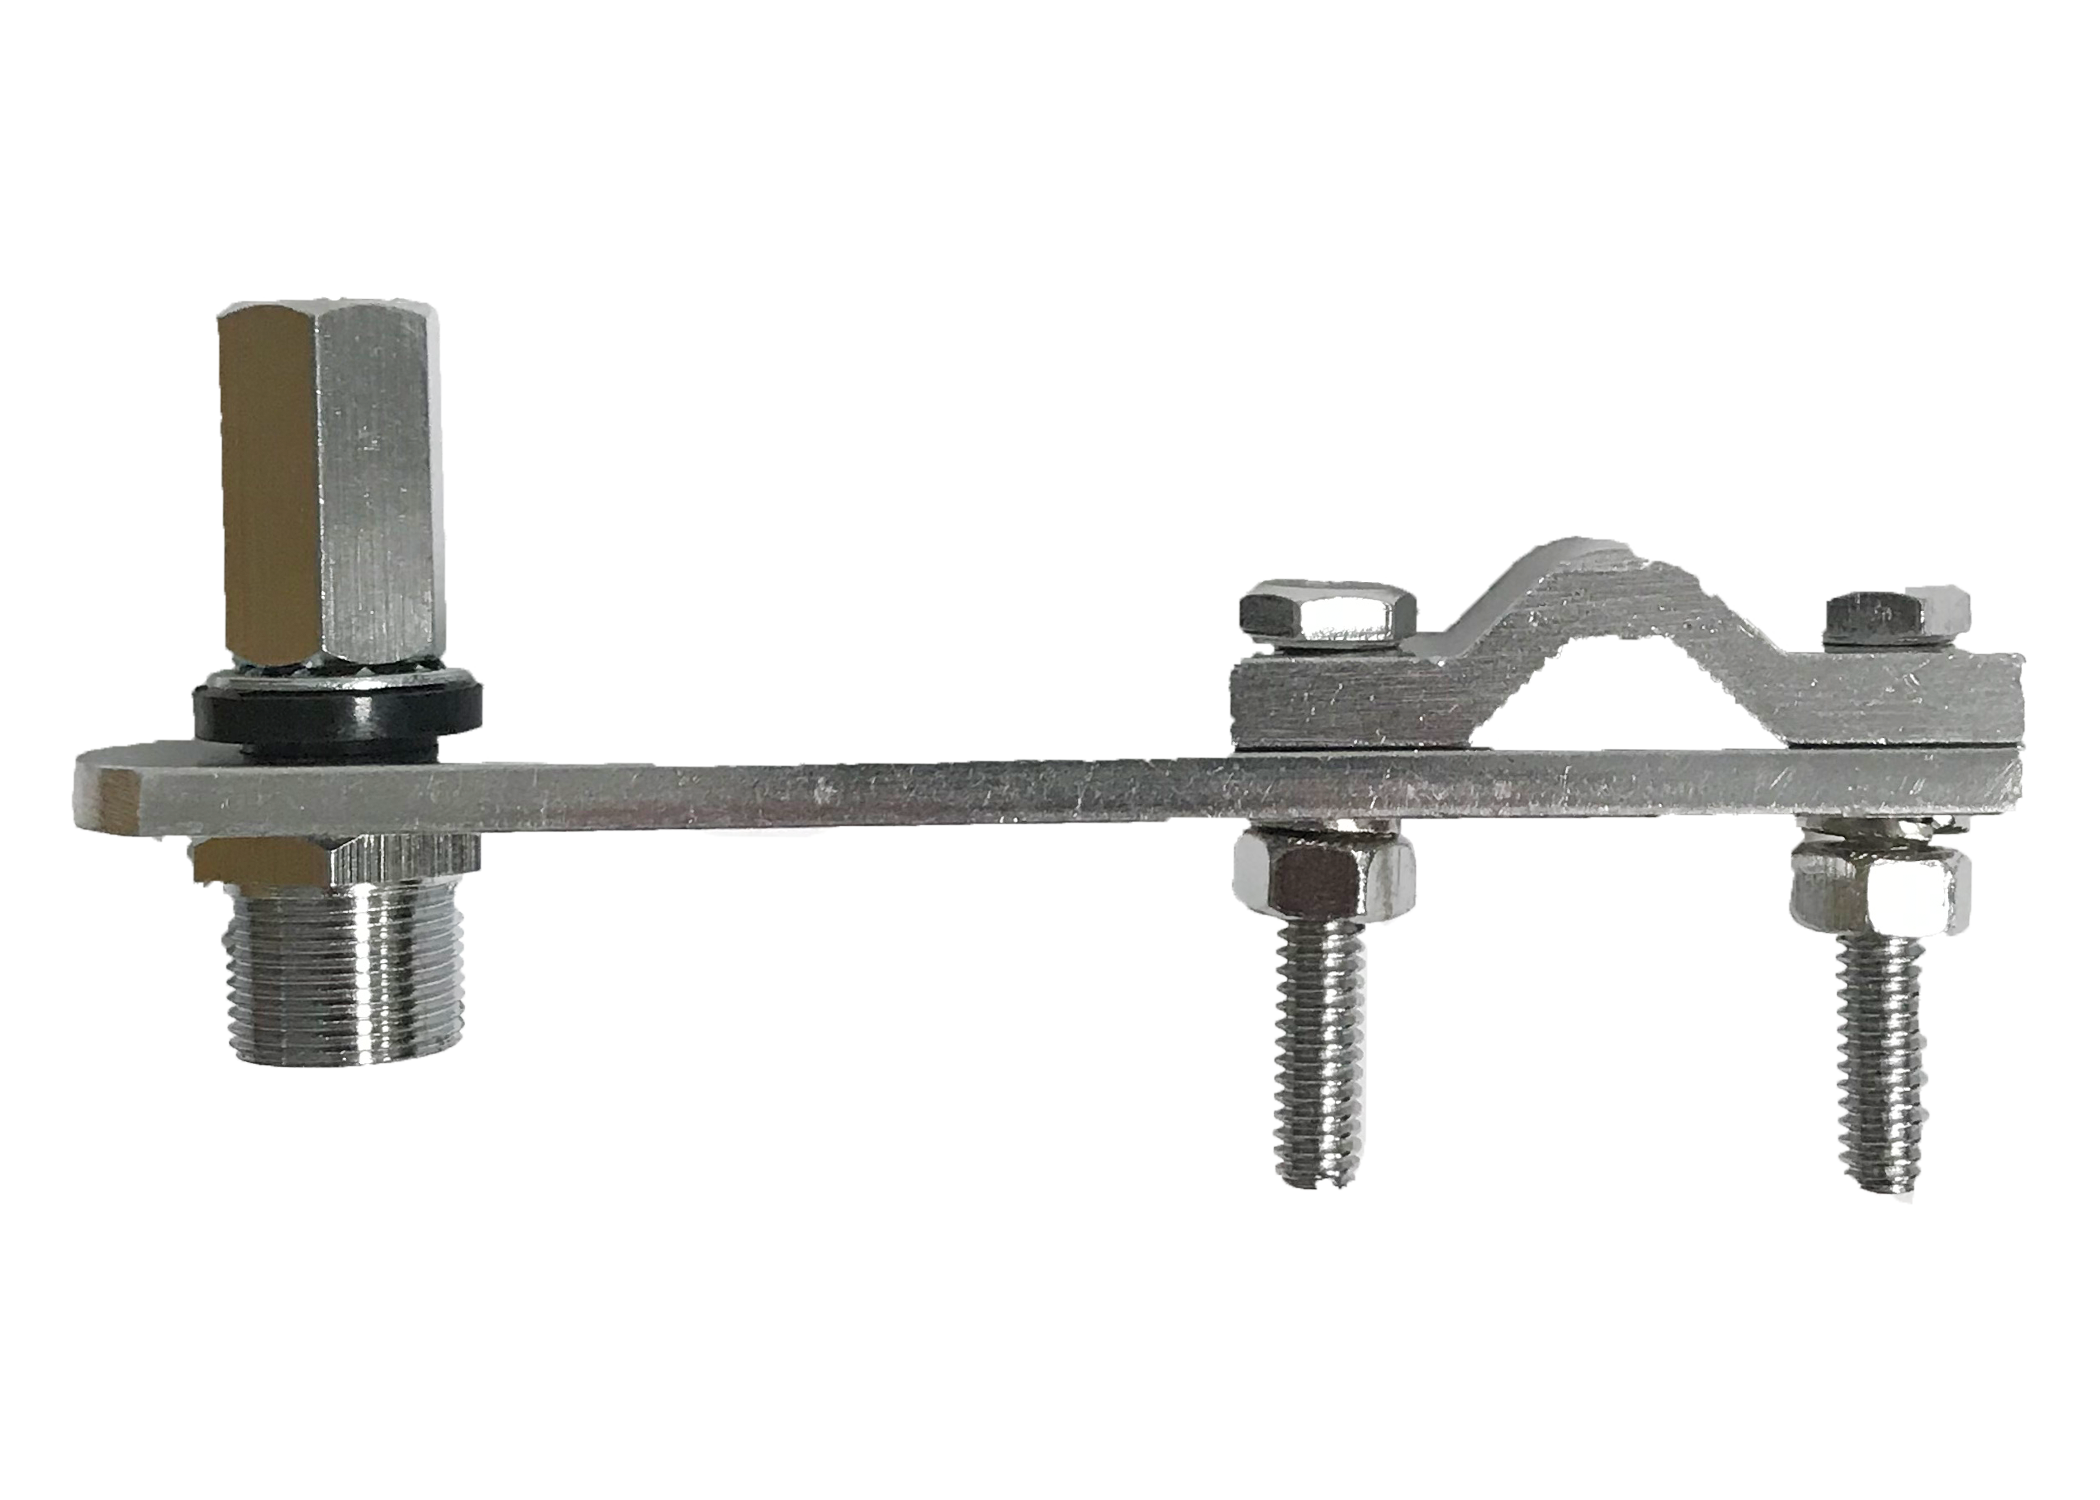 HM2L - Twinpoint Long Mirror Antenna Mount